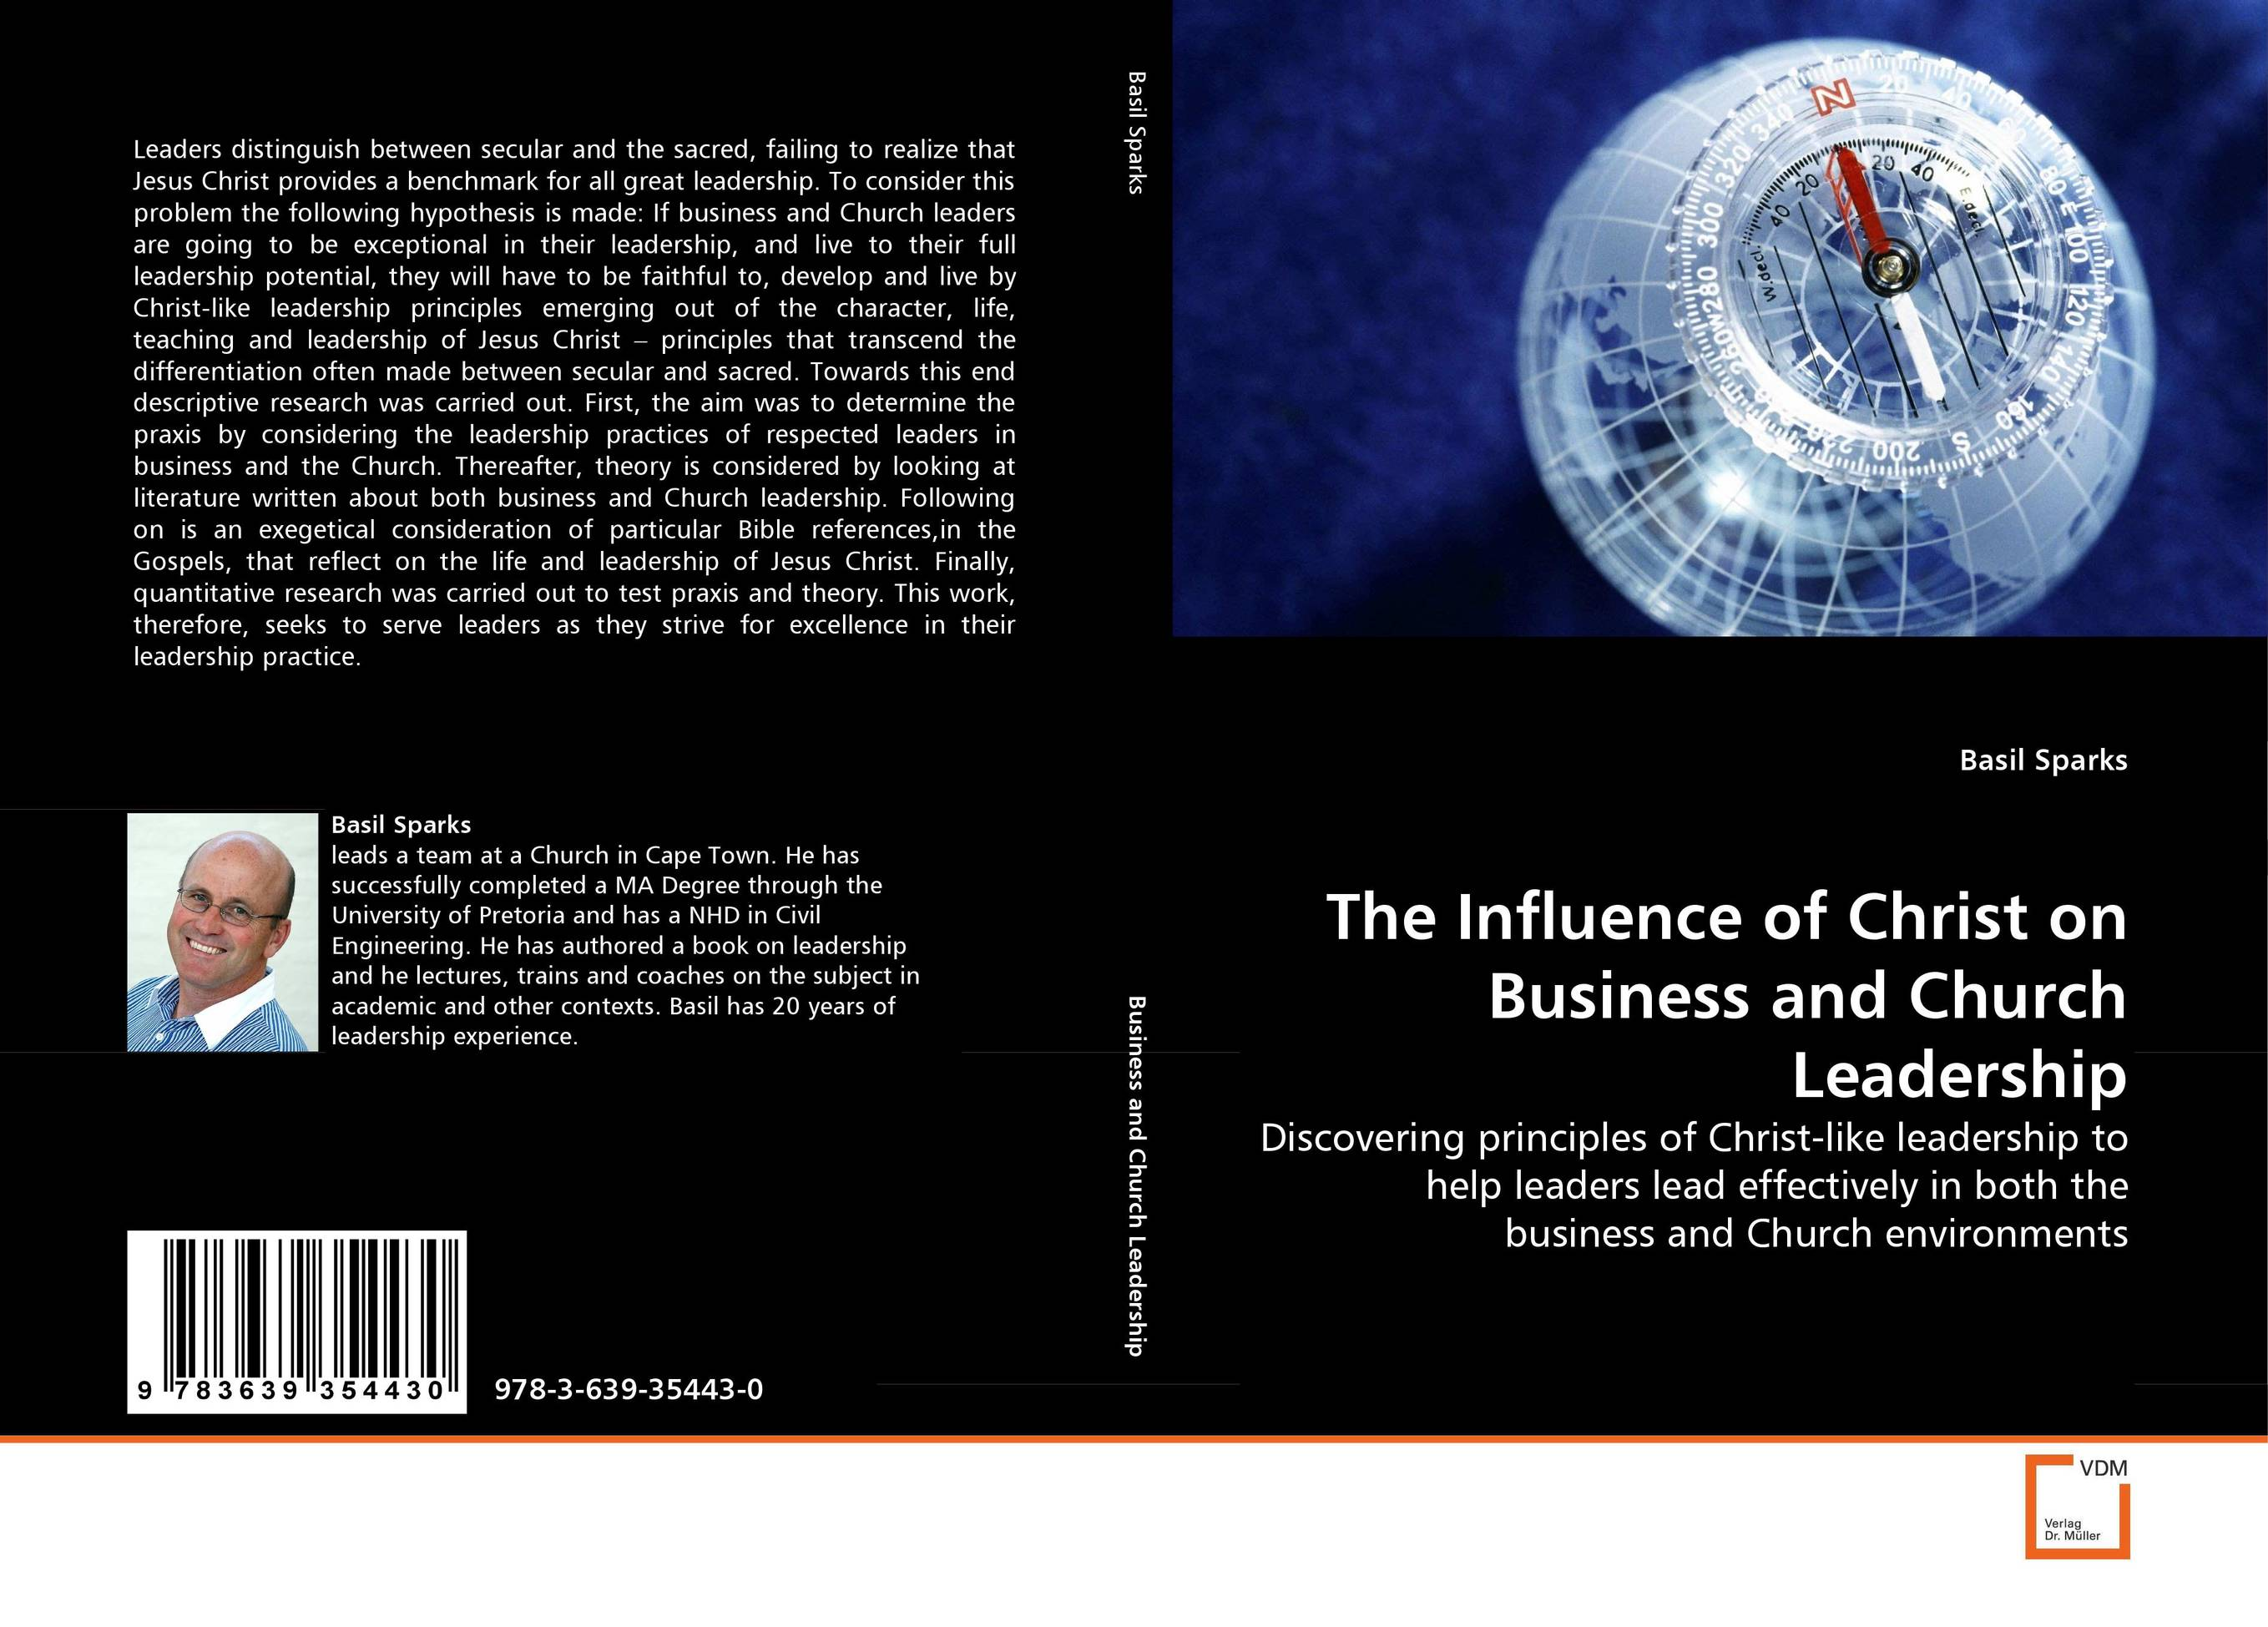 the influence of internet on business Controlling for other factors, the study showed that internet use empowers people by increasing their feelings of security, personal freedom, and influence, all feelings that have a positive effect on happiness and personal well-being.